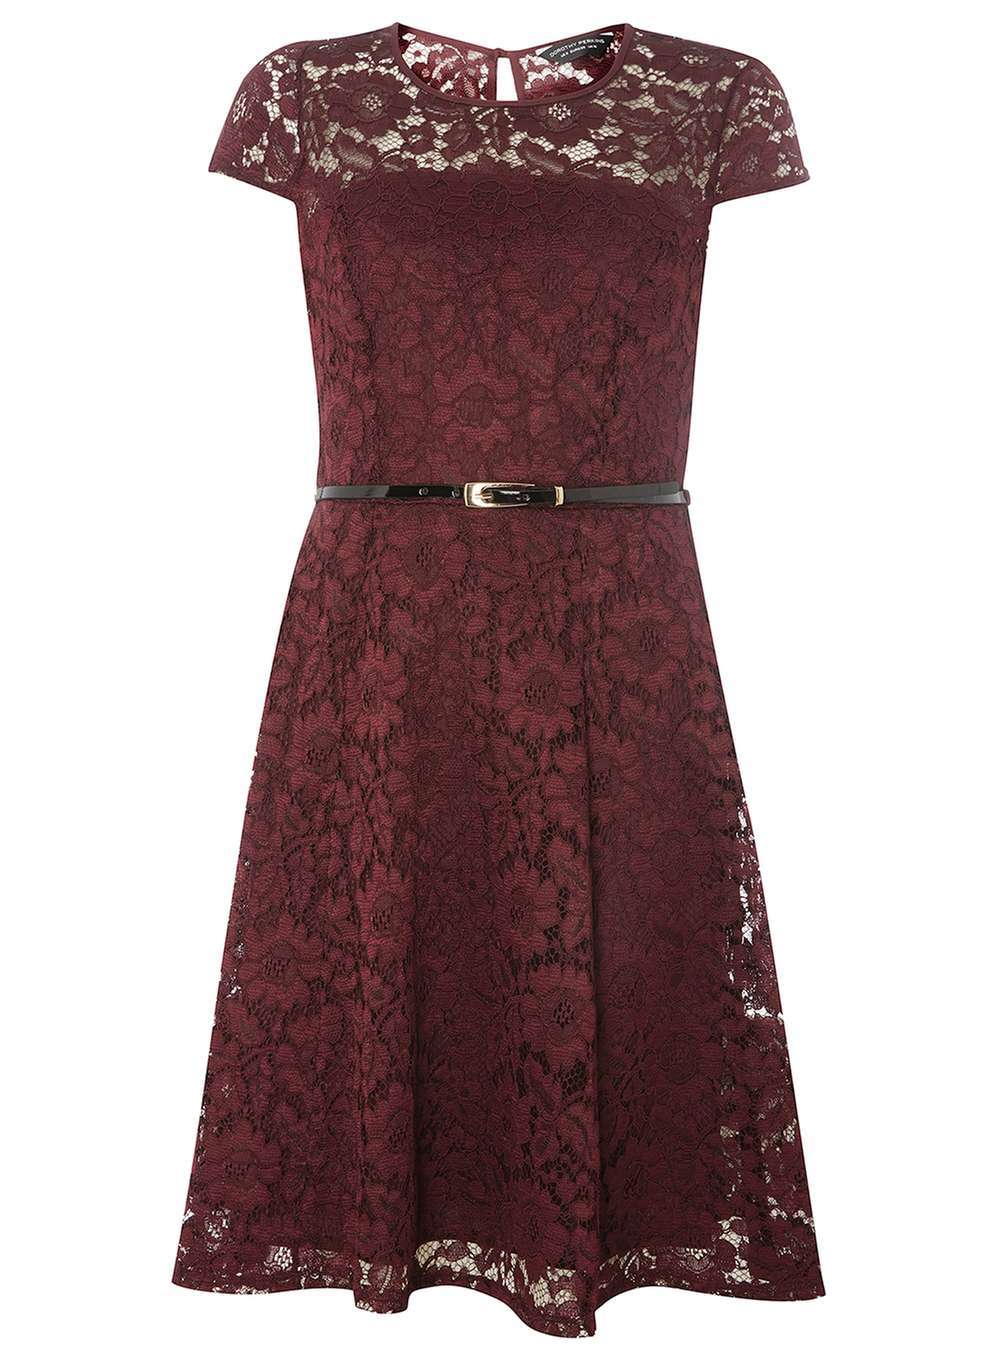 Womens Wine Lace Belted Fit And Flare Dress Wine - sleeve style: capped; pattern: plain; bust detail: sheer at bust; predominant colour: burgundy; occasions: evening; length: on the knee; fit: fitted at waist & bust; style: fit & flare; fibres: polyester/polyamide - 100%; neckline: crew; sleeve length: short sleeve; texture group: lace; pattern type: fabric; shoulder detail: sheer at shoulder; season: a/w 2016; wardrobe: event